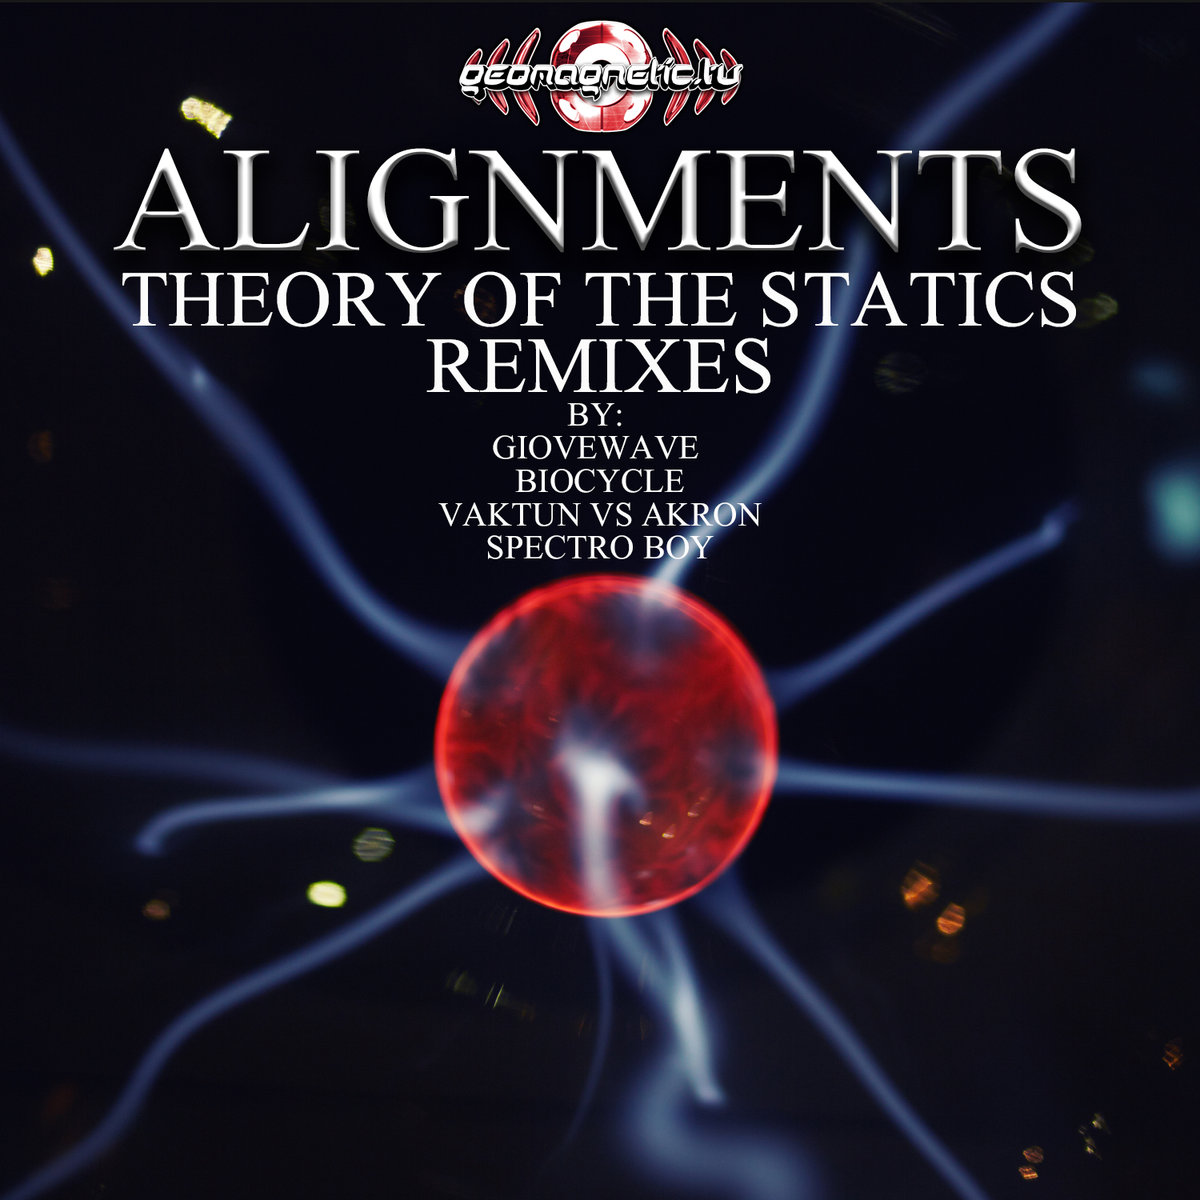 Alignments - Theory of the Statics (Vaktun & Akron Remix) @ 'Theory of the Statics (Remixes)' album (electronic, goa)